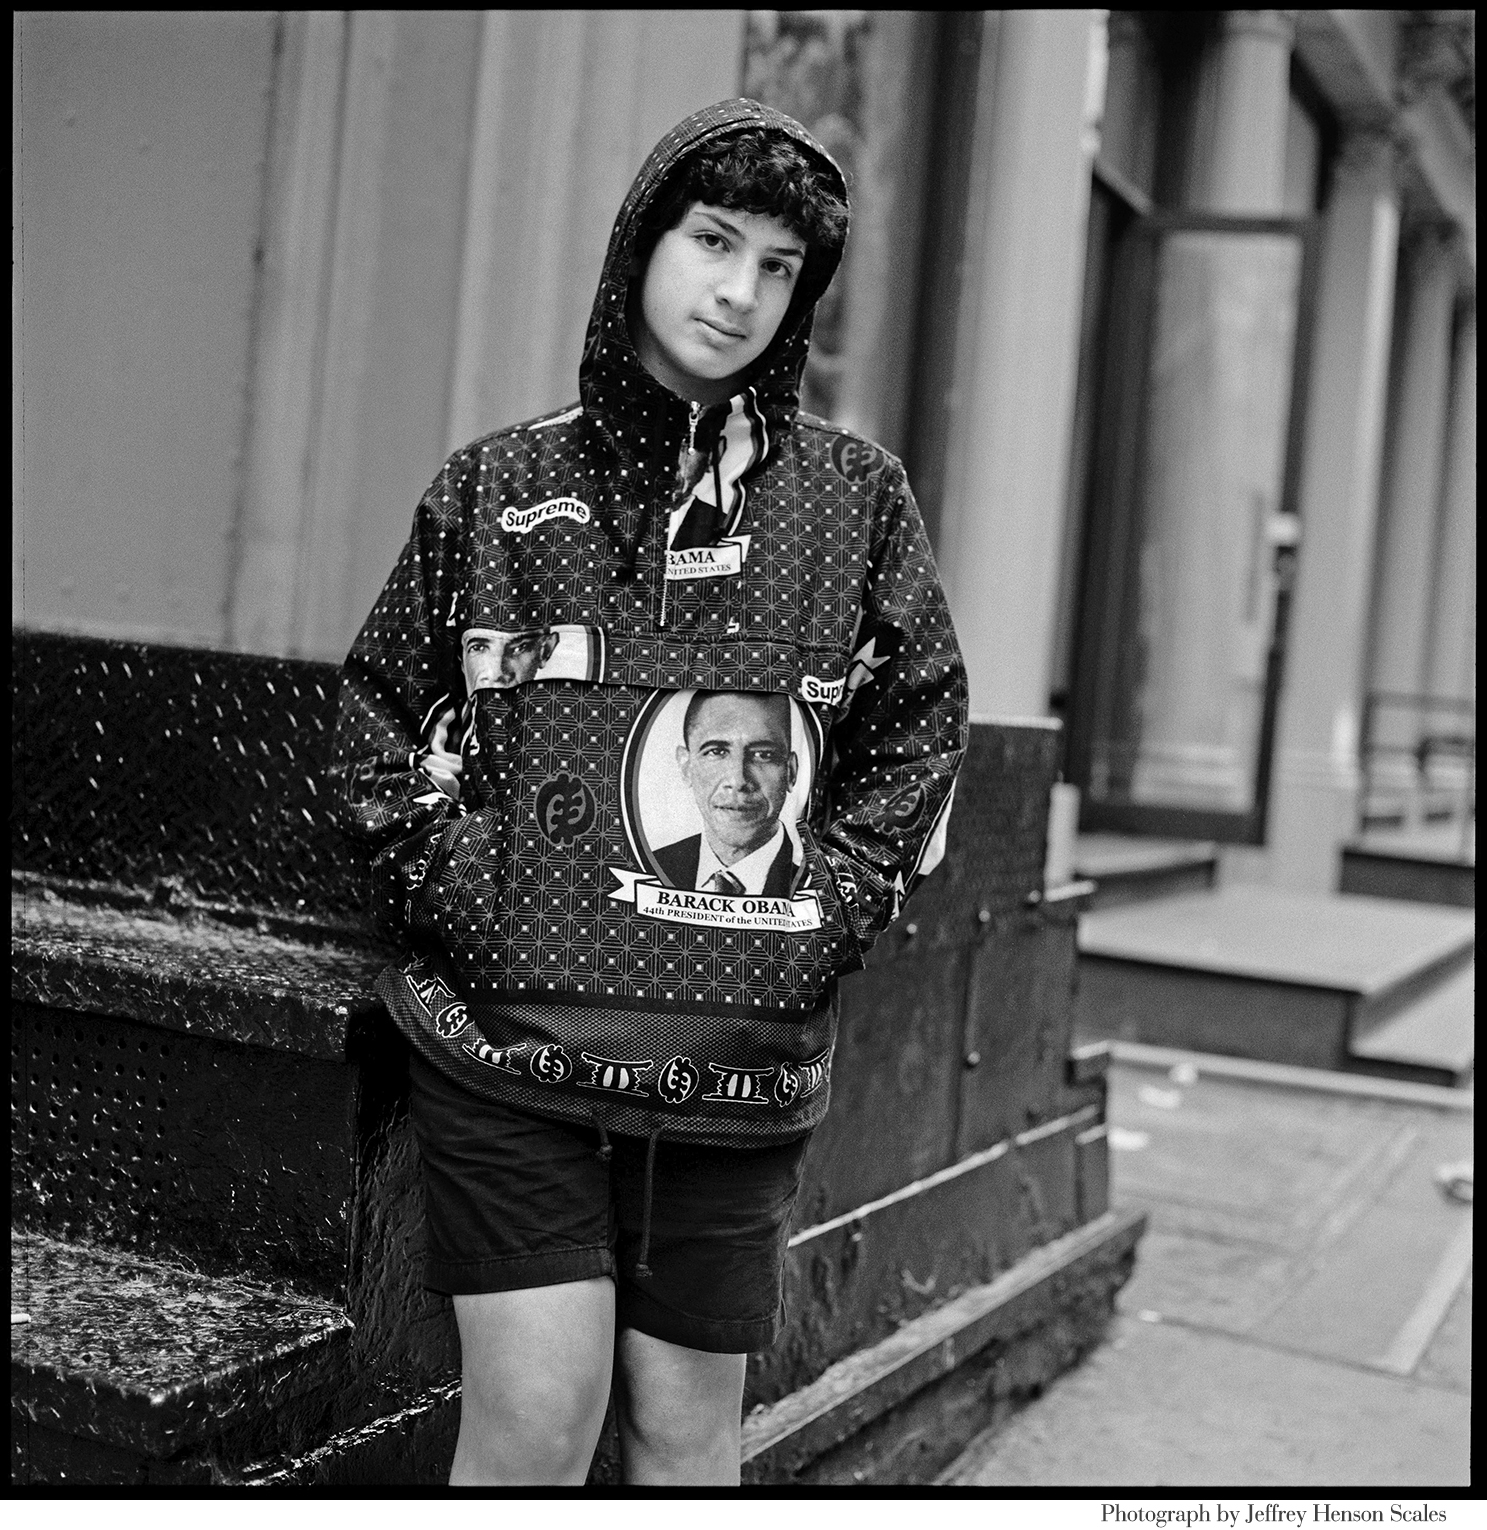 The Look _ New York Times_ Rebecca Pietri Stylist _ Casting _ Jeffery Henson Scale Photgrapher_Eve Lyon Editor_ New Geeks_Article_Nom Core- Youth Fashion_ Supreme_Palace_Vans_Street fashion _ Soho_ Teens_Obama_ Shot .JPG